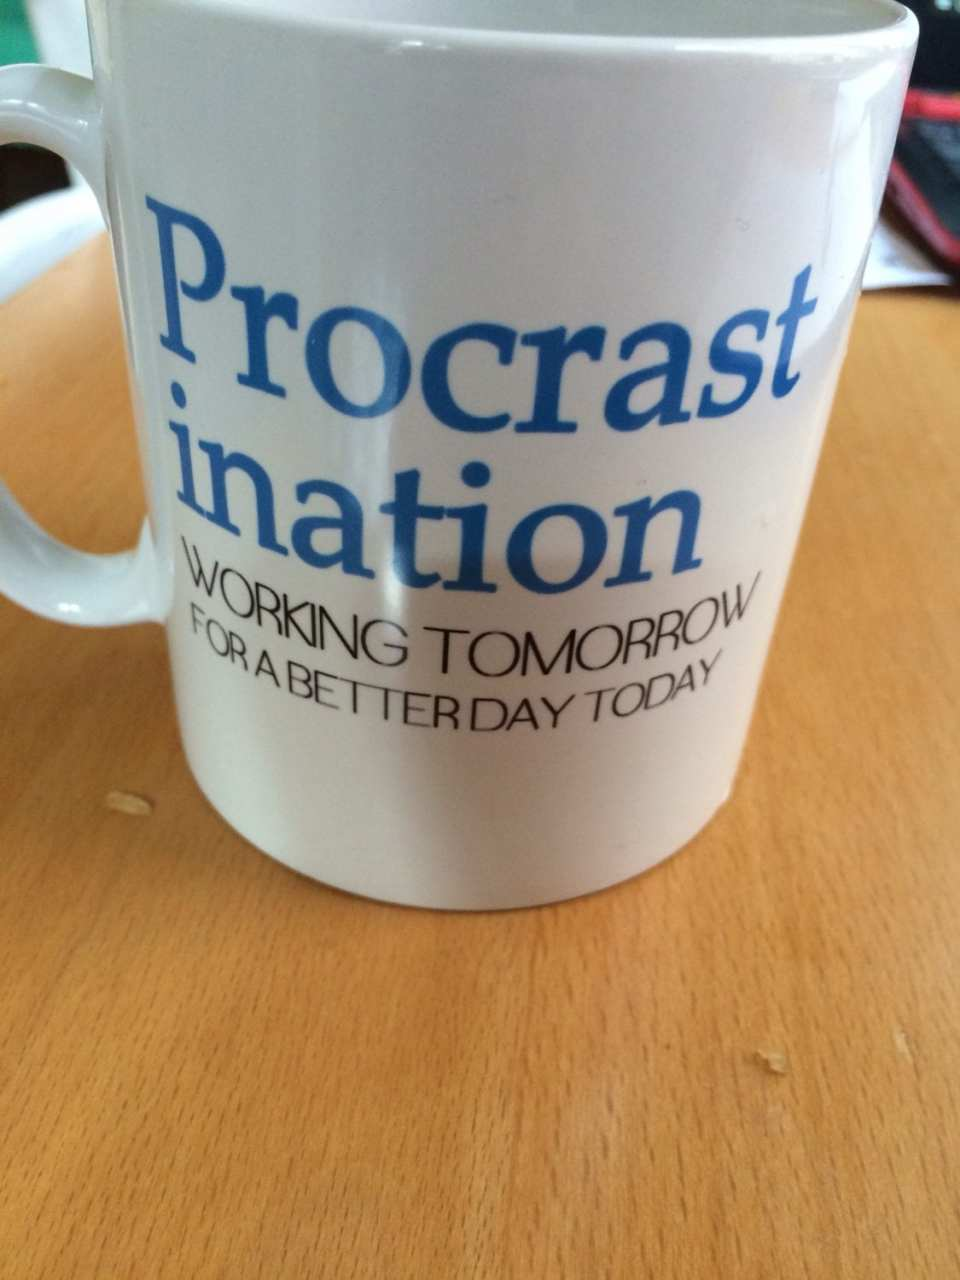 """Productive Monday Mornings start with a Procrastination mug - a white mug with the words """"Procrastination: Working Tomorrow For A Better Day Today"""""""